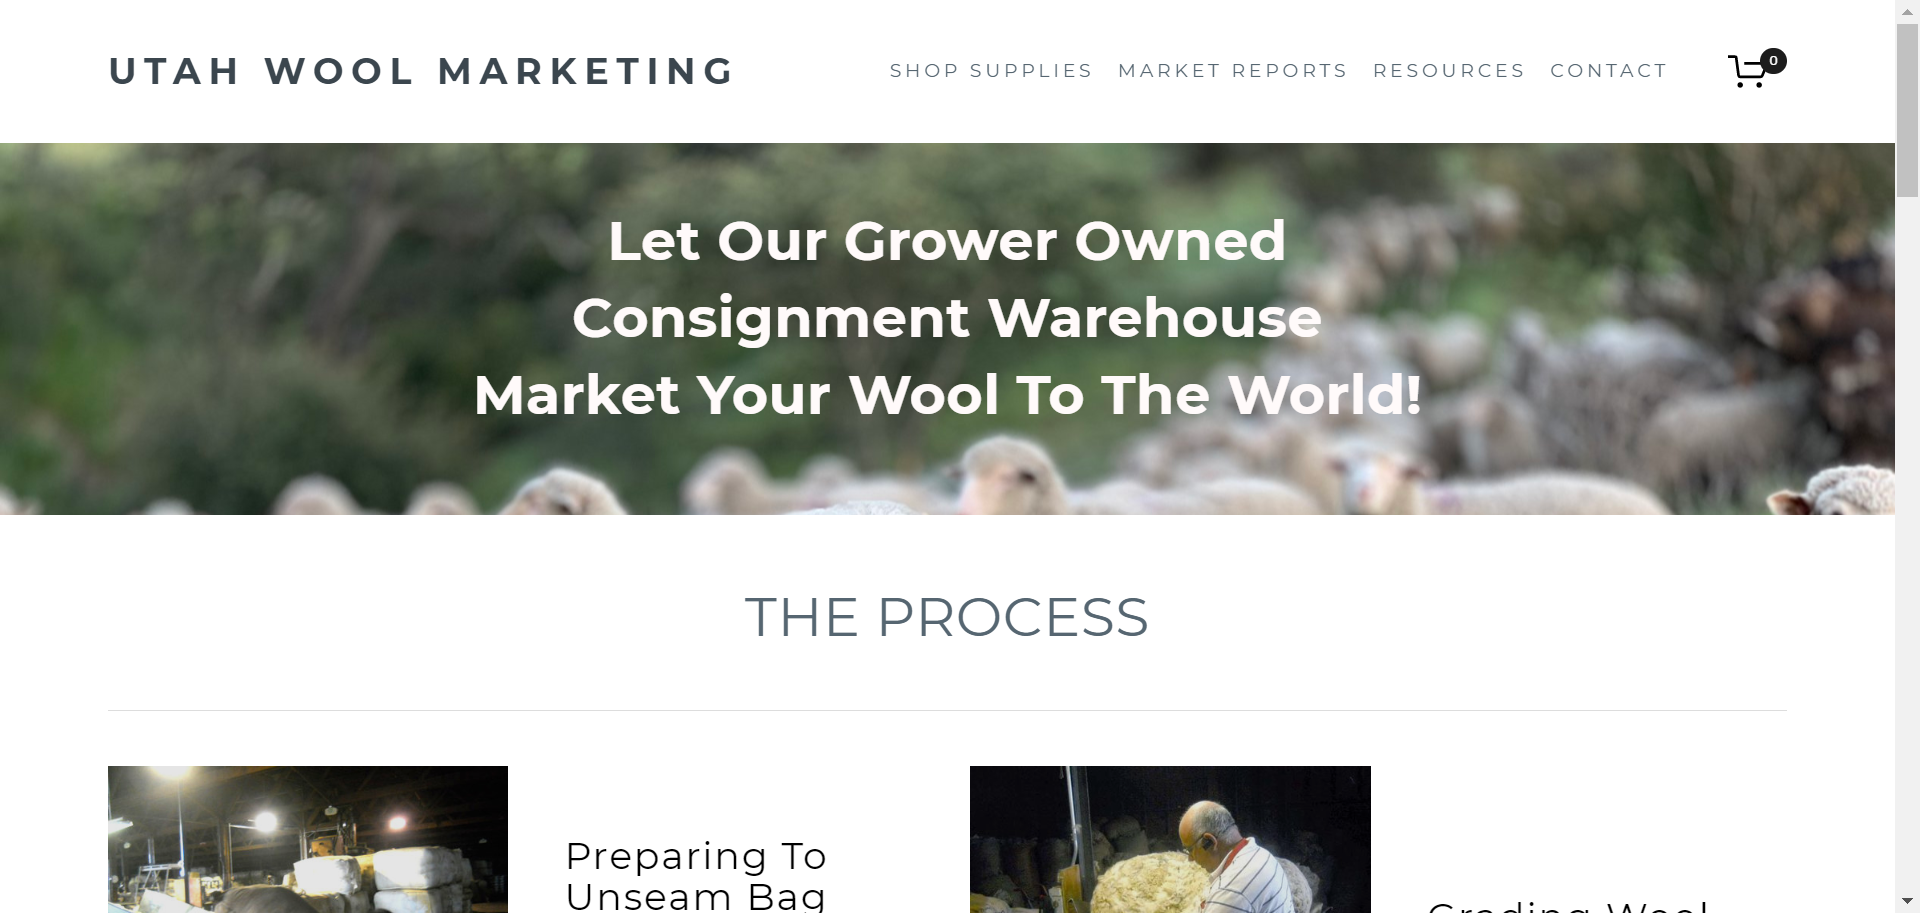 uTAH wOOL mARKETING - ECOMMERCE